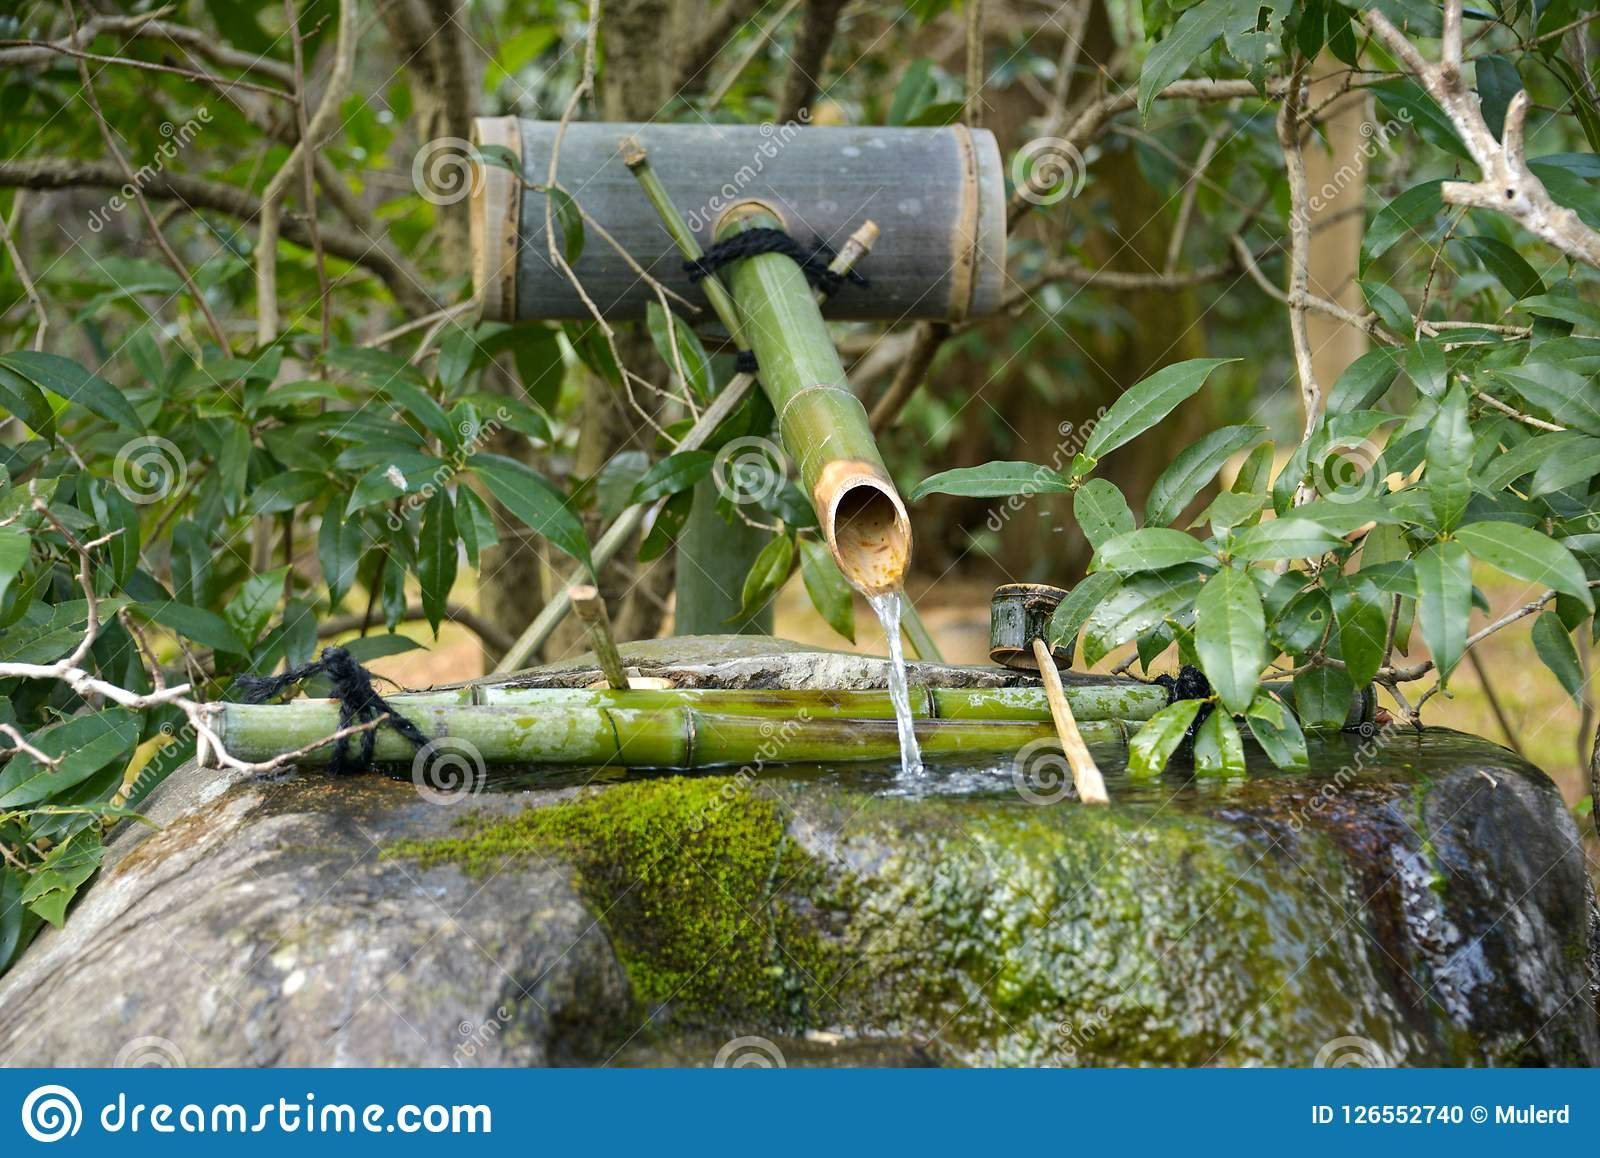 Japan Travel Japanese Bamboo Water Fountain Noise Maker April 2018